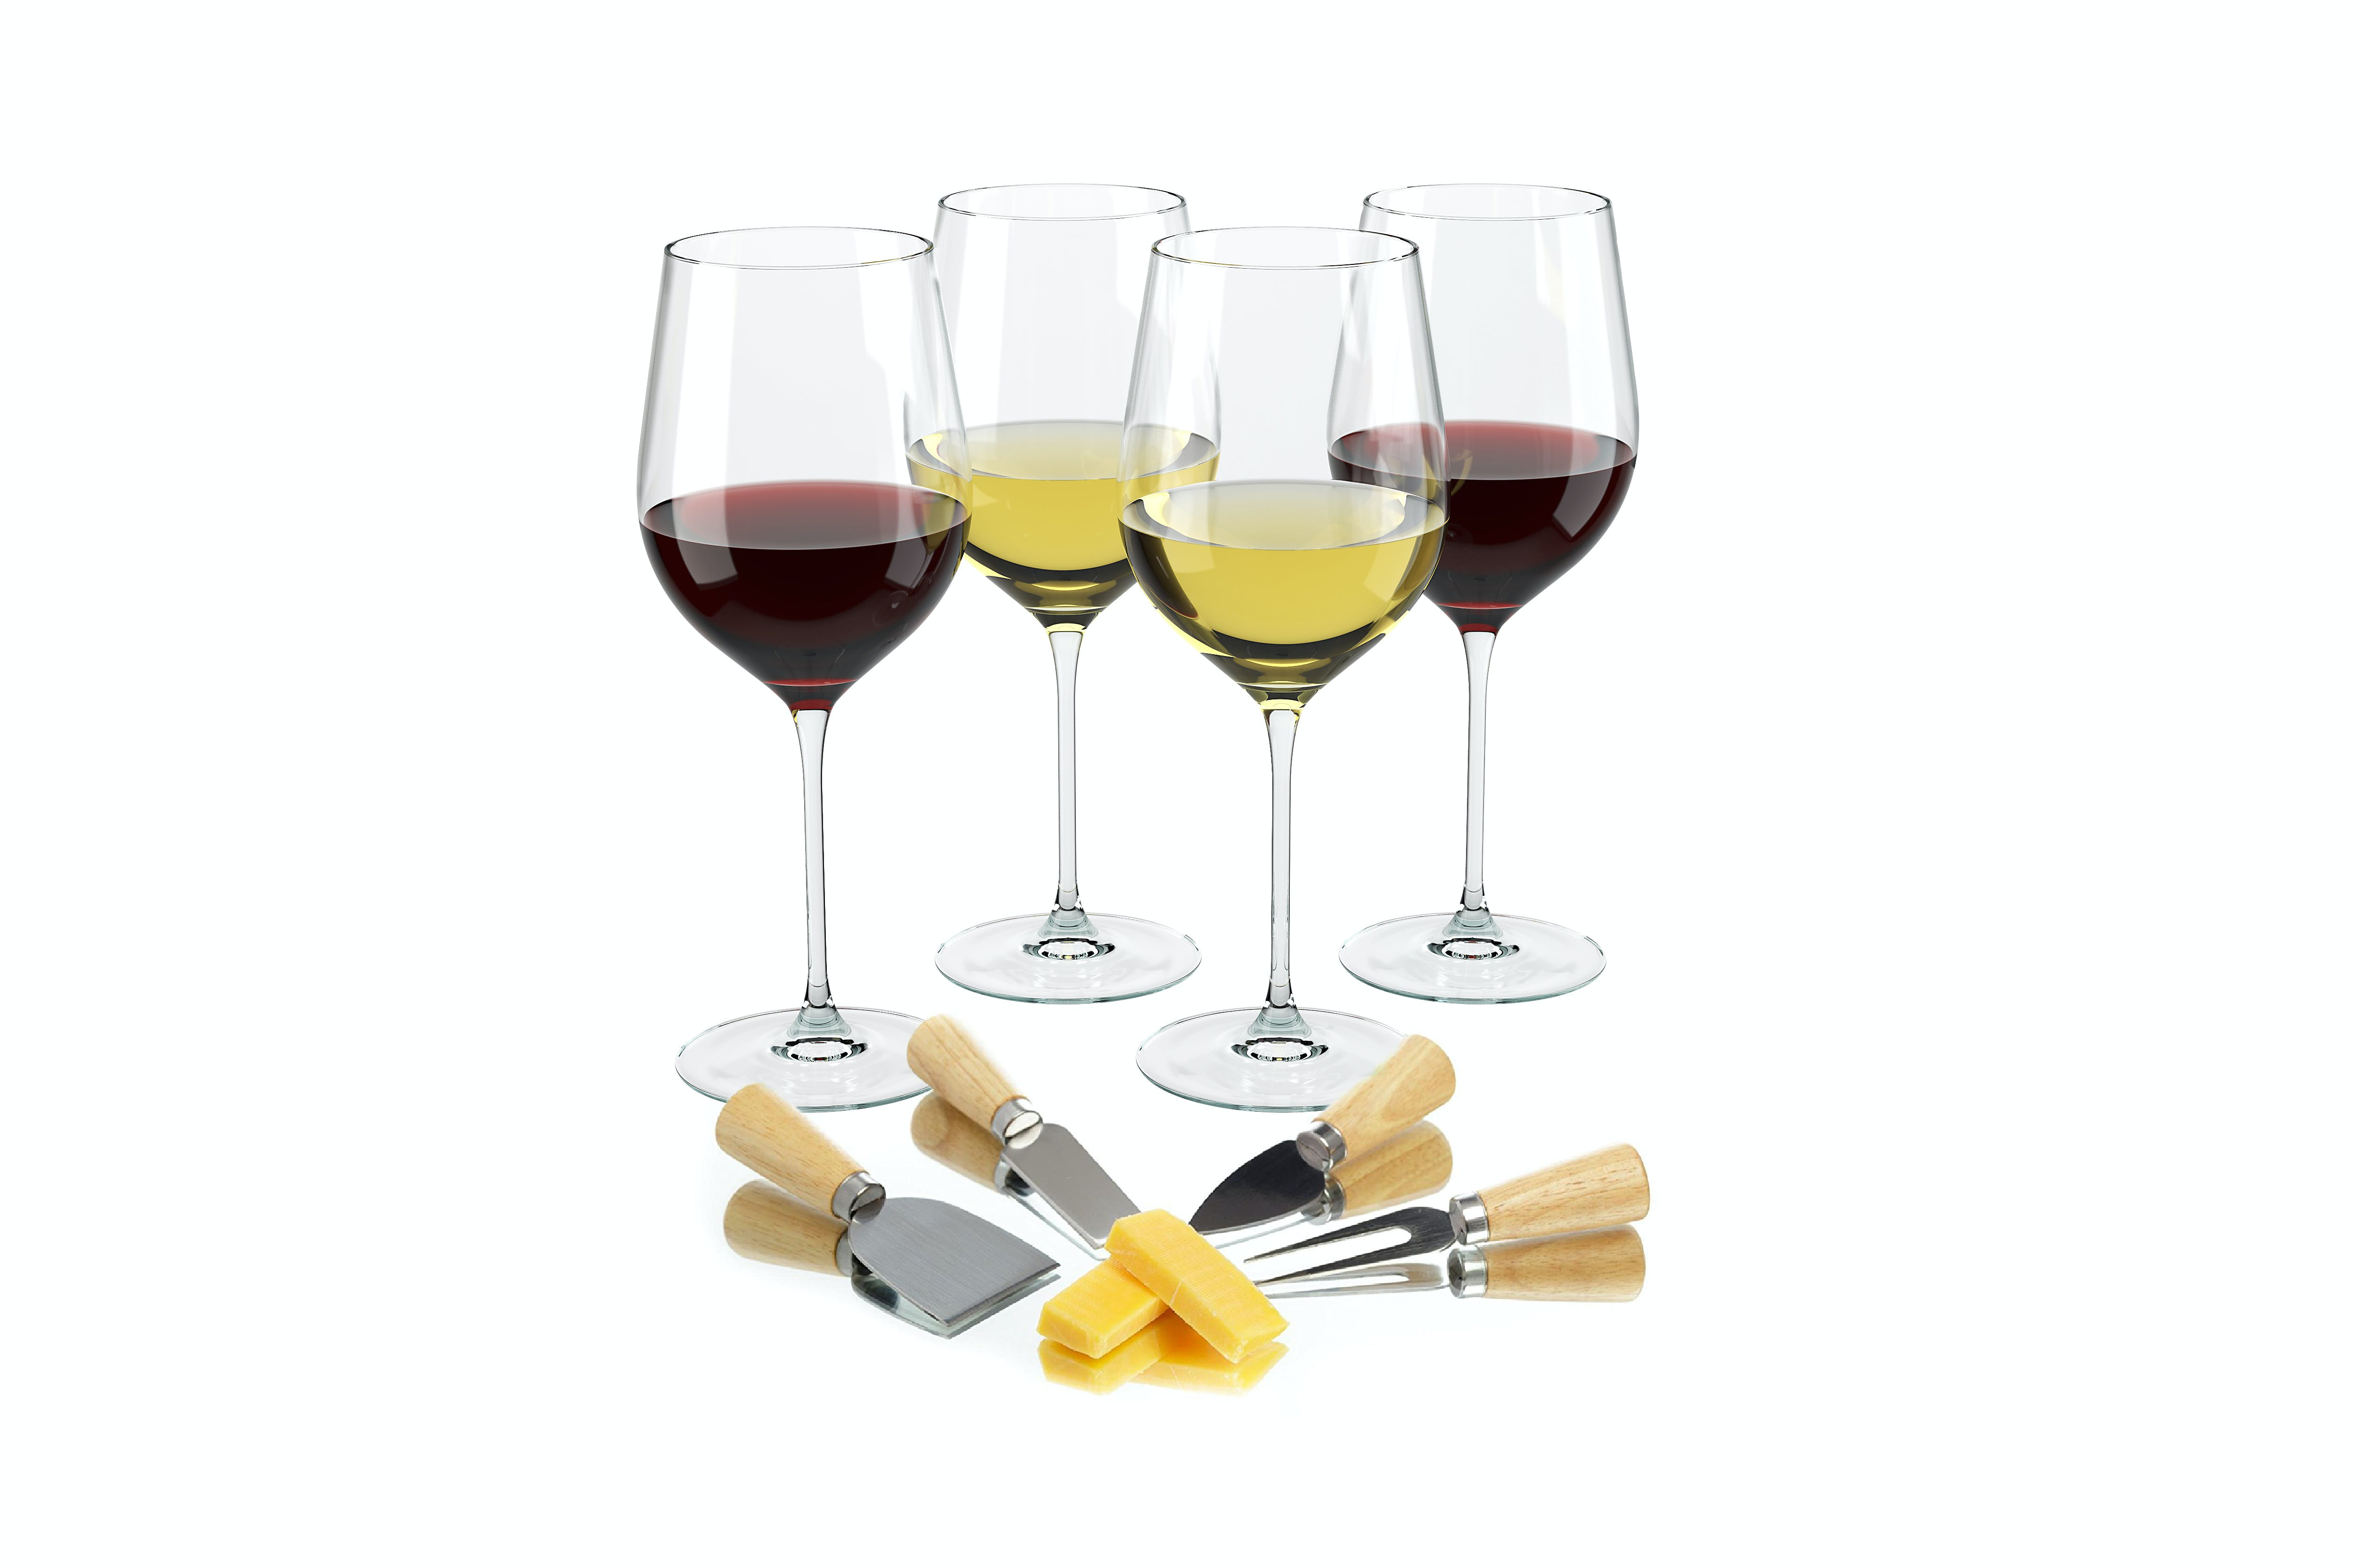 Wine Science Set of 4 Wide Mouth Glasses with 4 Cheese Knives - Mouth Blown Premium Crystal Glassware 19 oz Wine glass sold by Advanced Mixology